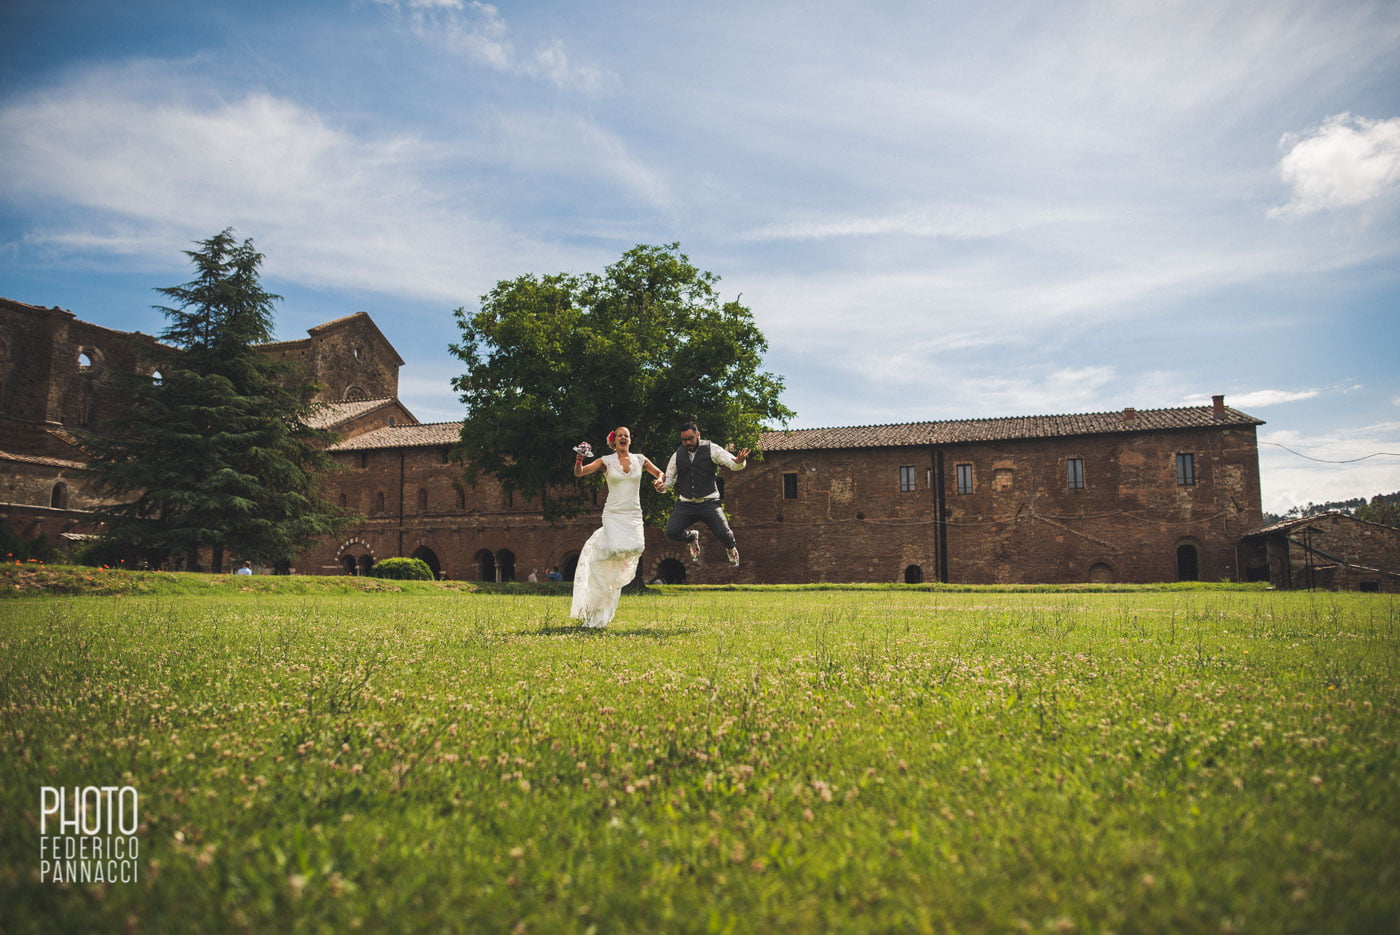 055-DestinationWedding-Sangalgano